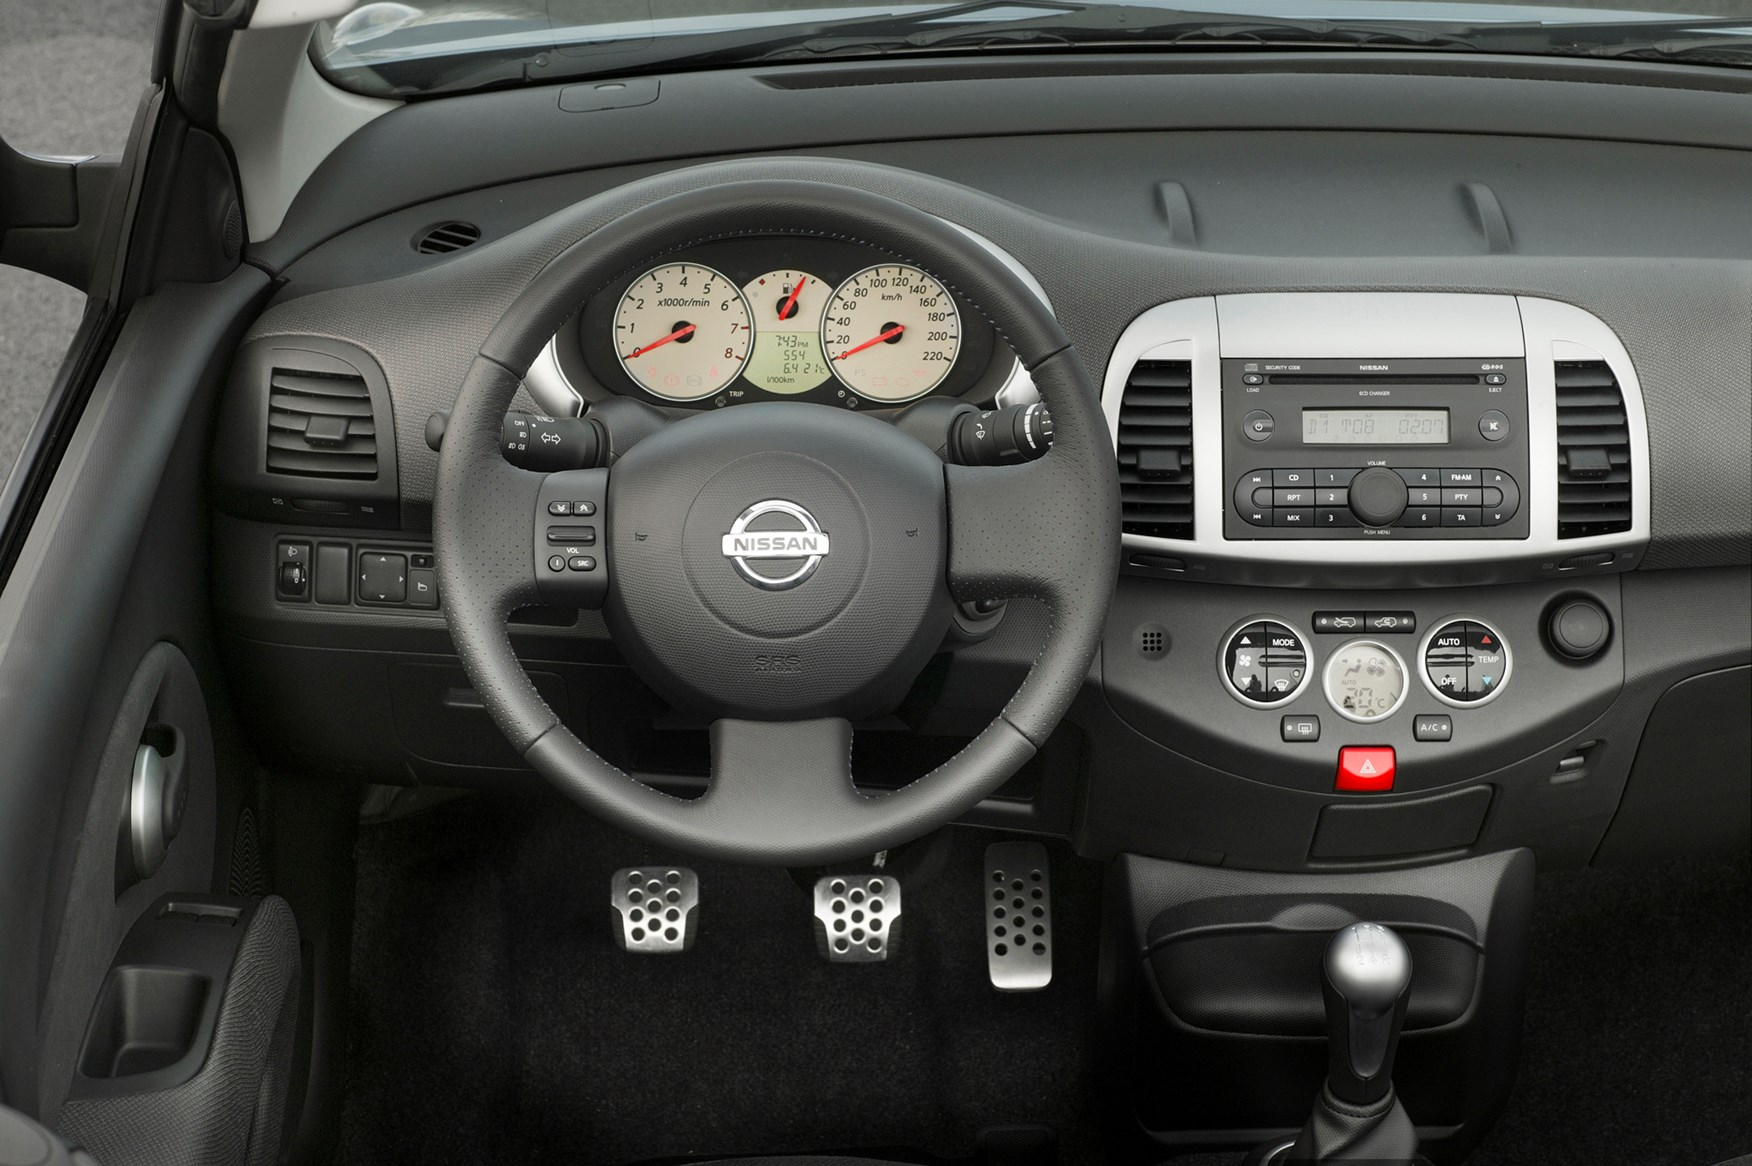 nissan micra c c 2005 2009 features equipment and. Black Bedroom Furniture Sets. Home Design Ideas